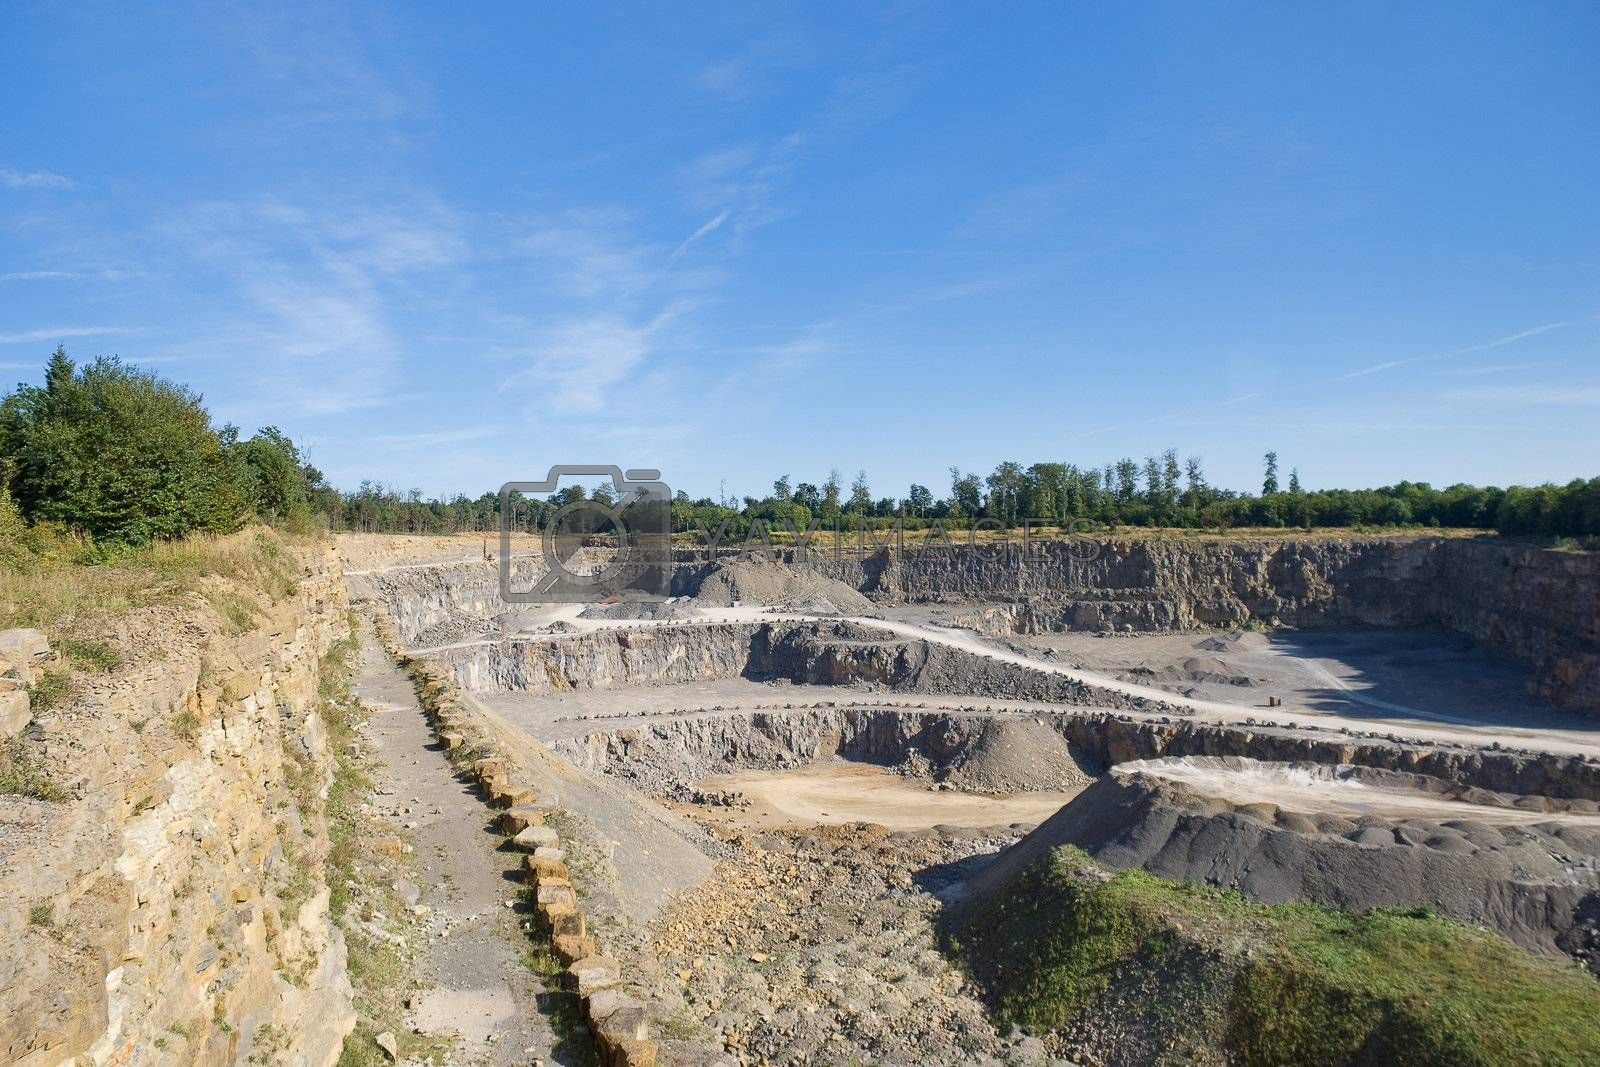 View into the mining of the quarry